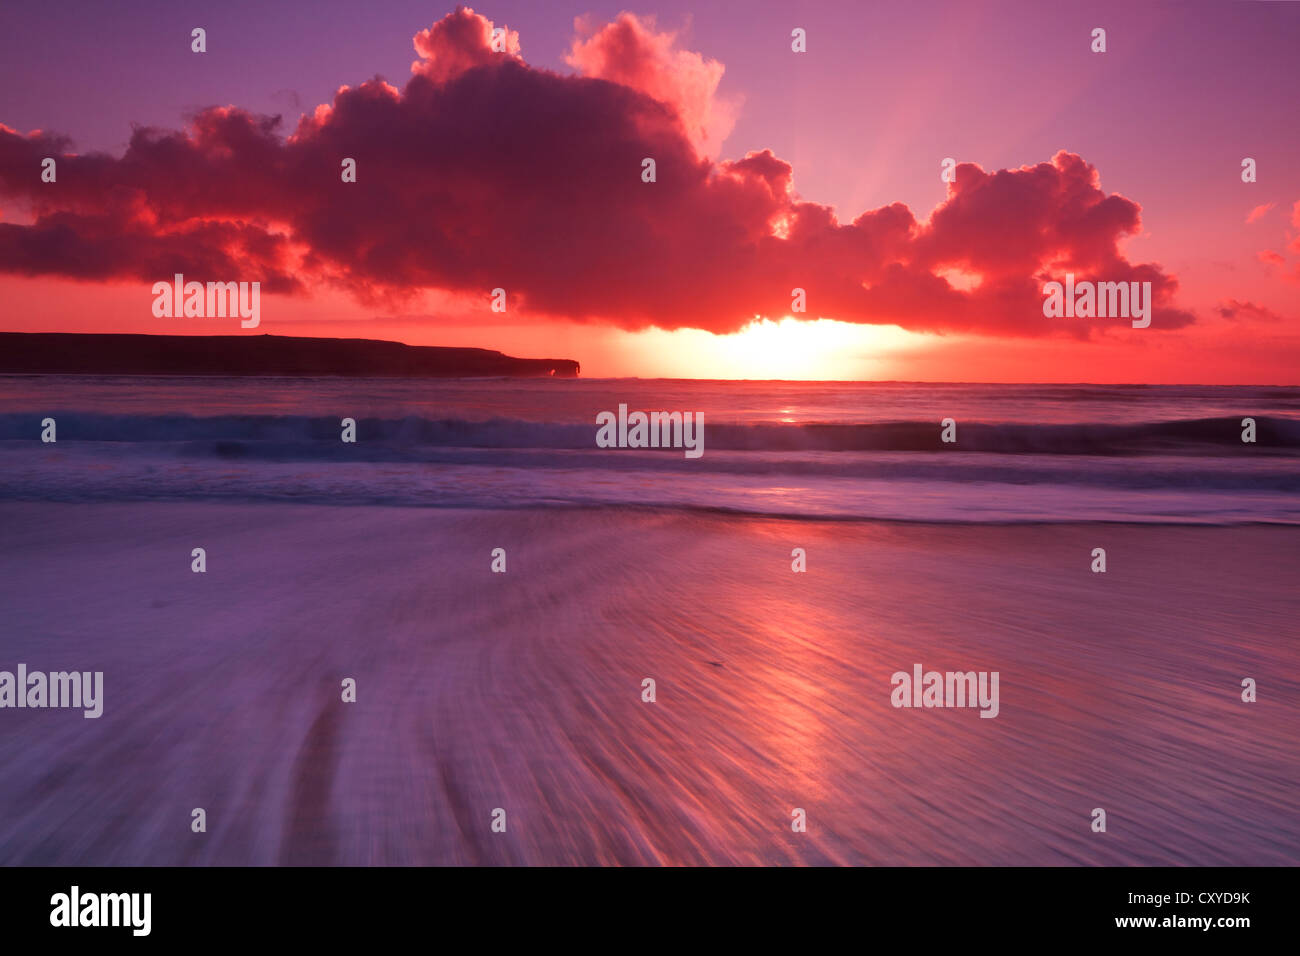 Plage coucher du soleil hiver Skaill, îles Orkney Photo Stock